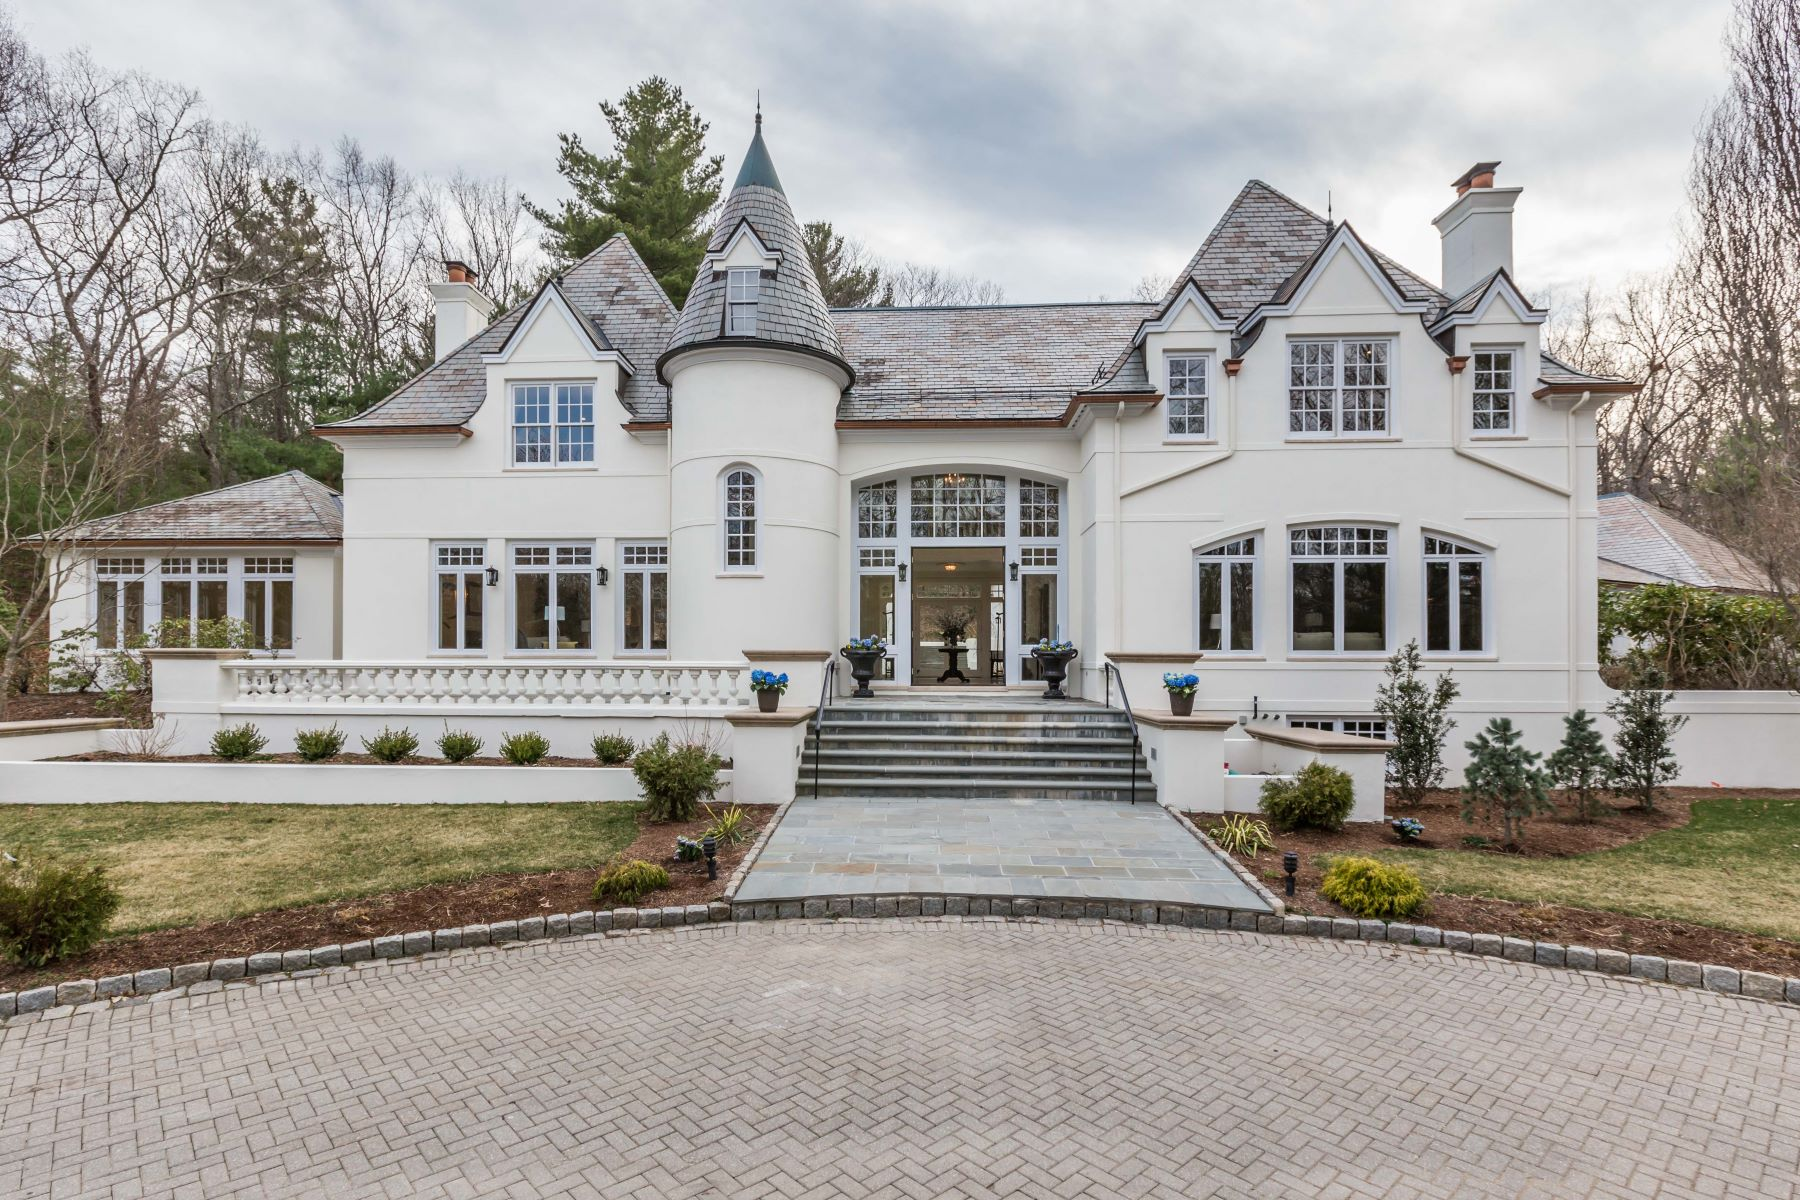 Single Family Home for Sale at Stunning Newly Renovated Wellesley Estate 190 Pond Road Wellesley, Massachusetts 02482 United States